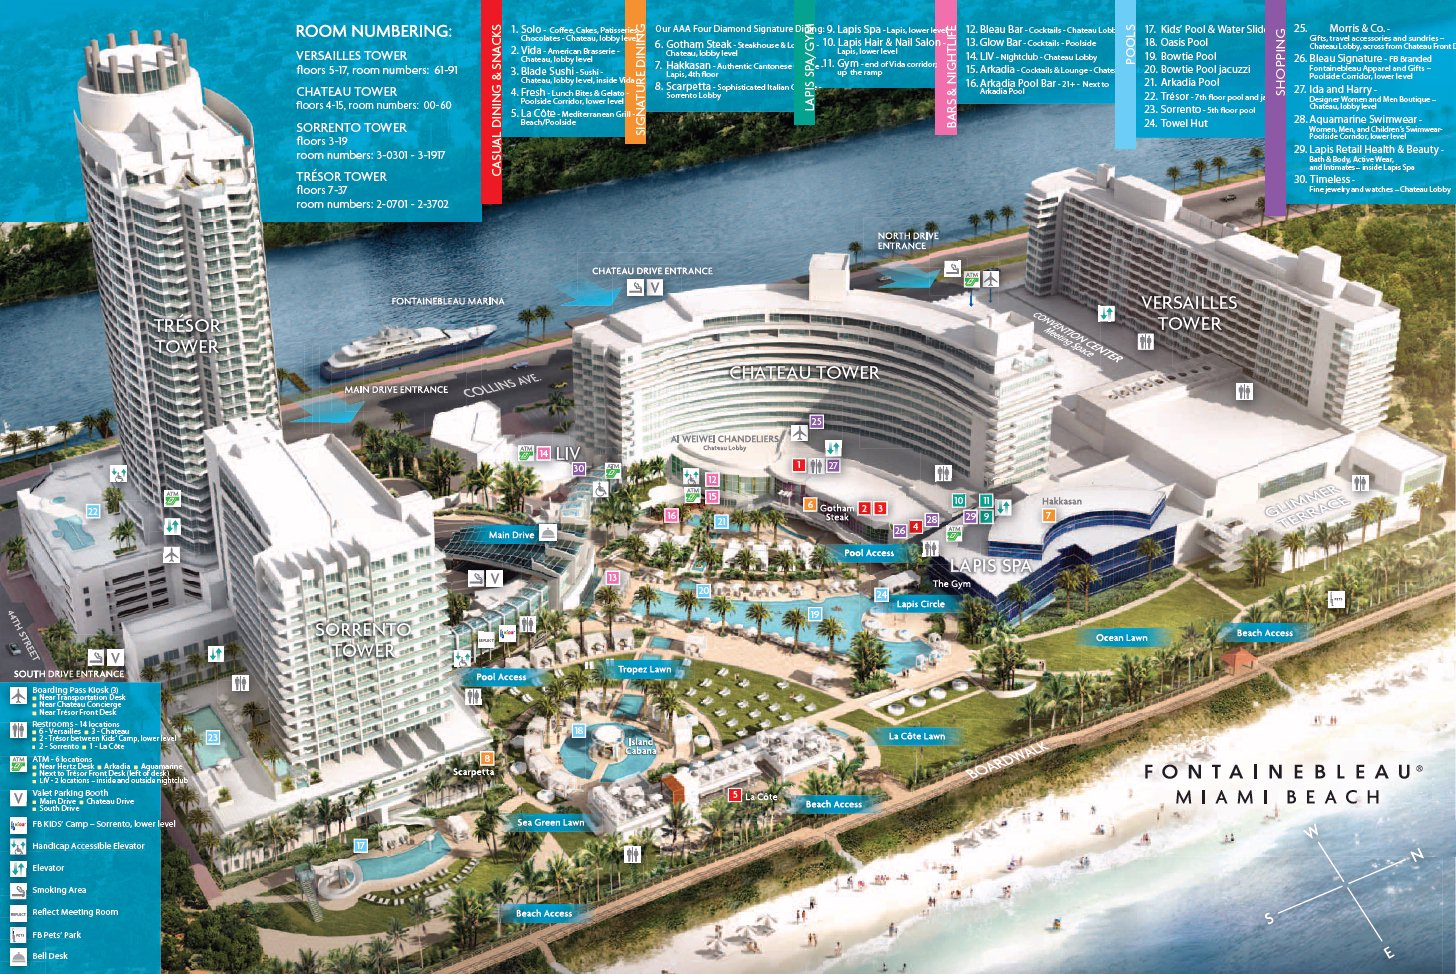 resort map | fontainebleau miami beach | florida